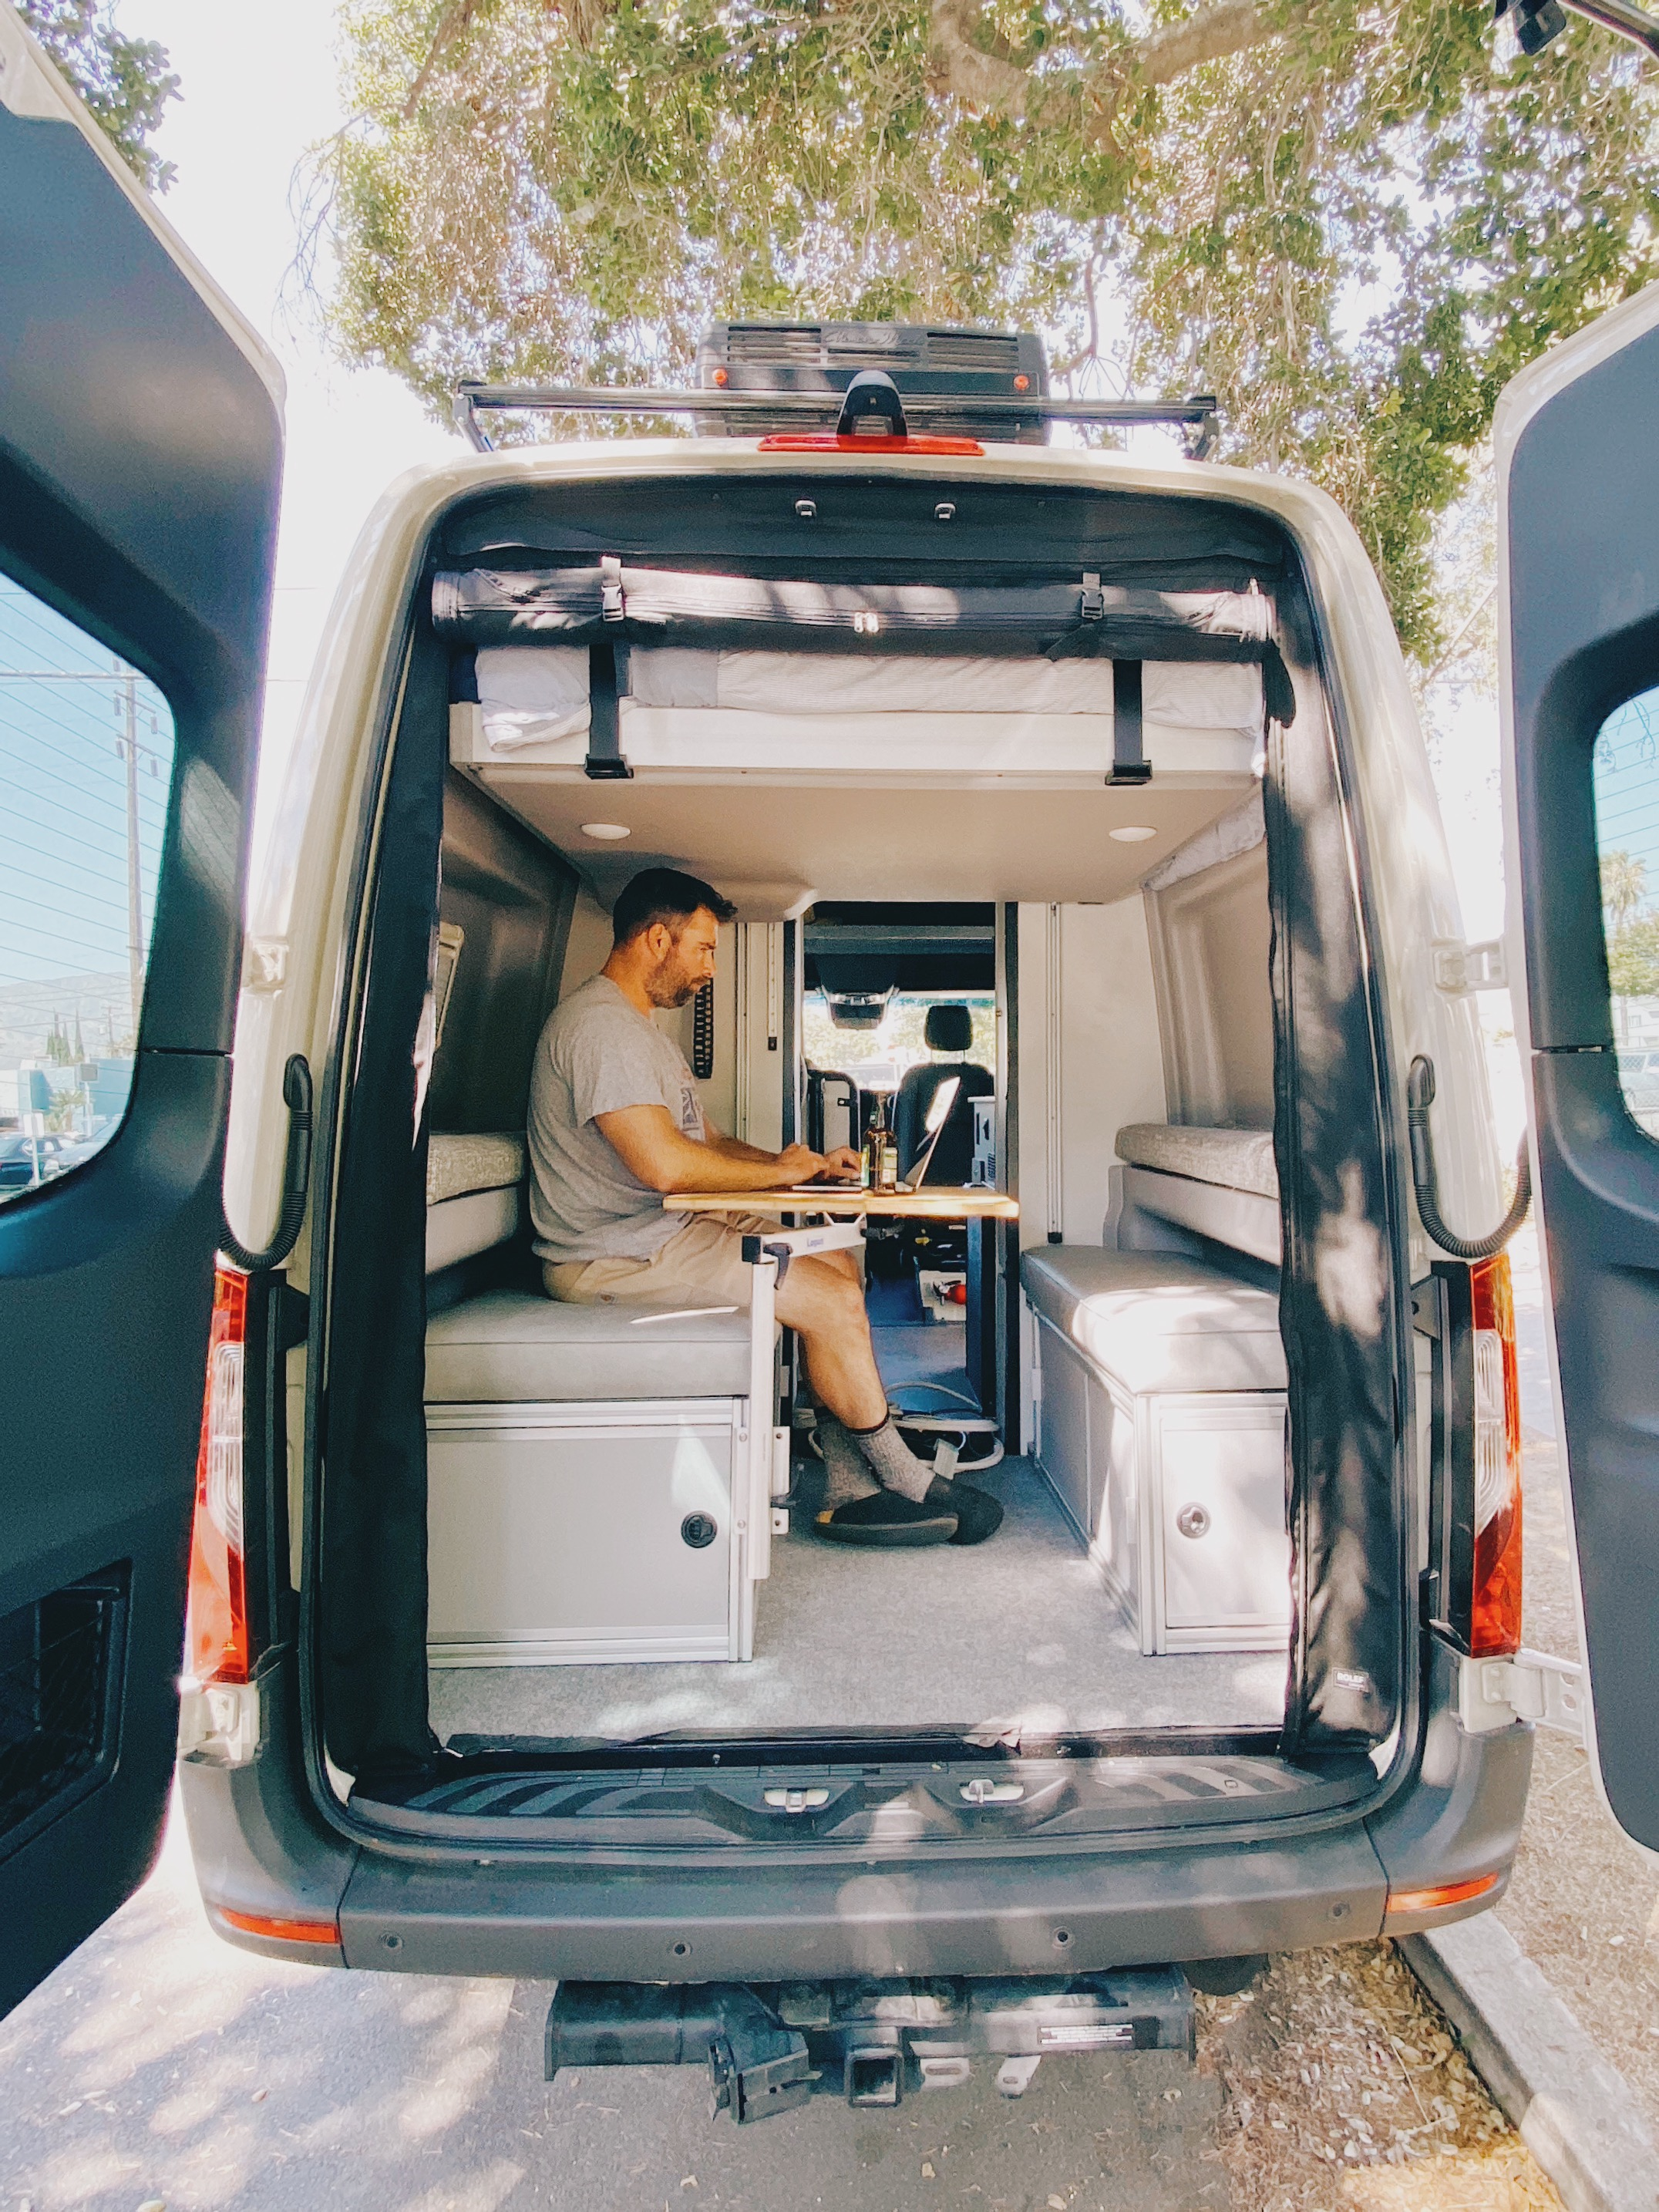 Optional Booth Seats & Bamboo Dining  Table/Work Table with storage underneath seats upon request. Canyon Adventure Van GLSS System!. Mercedes SPRINTER 2020